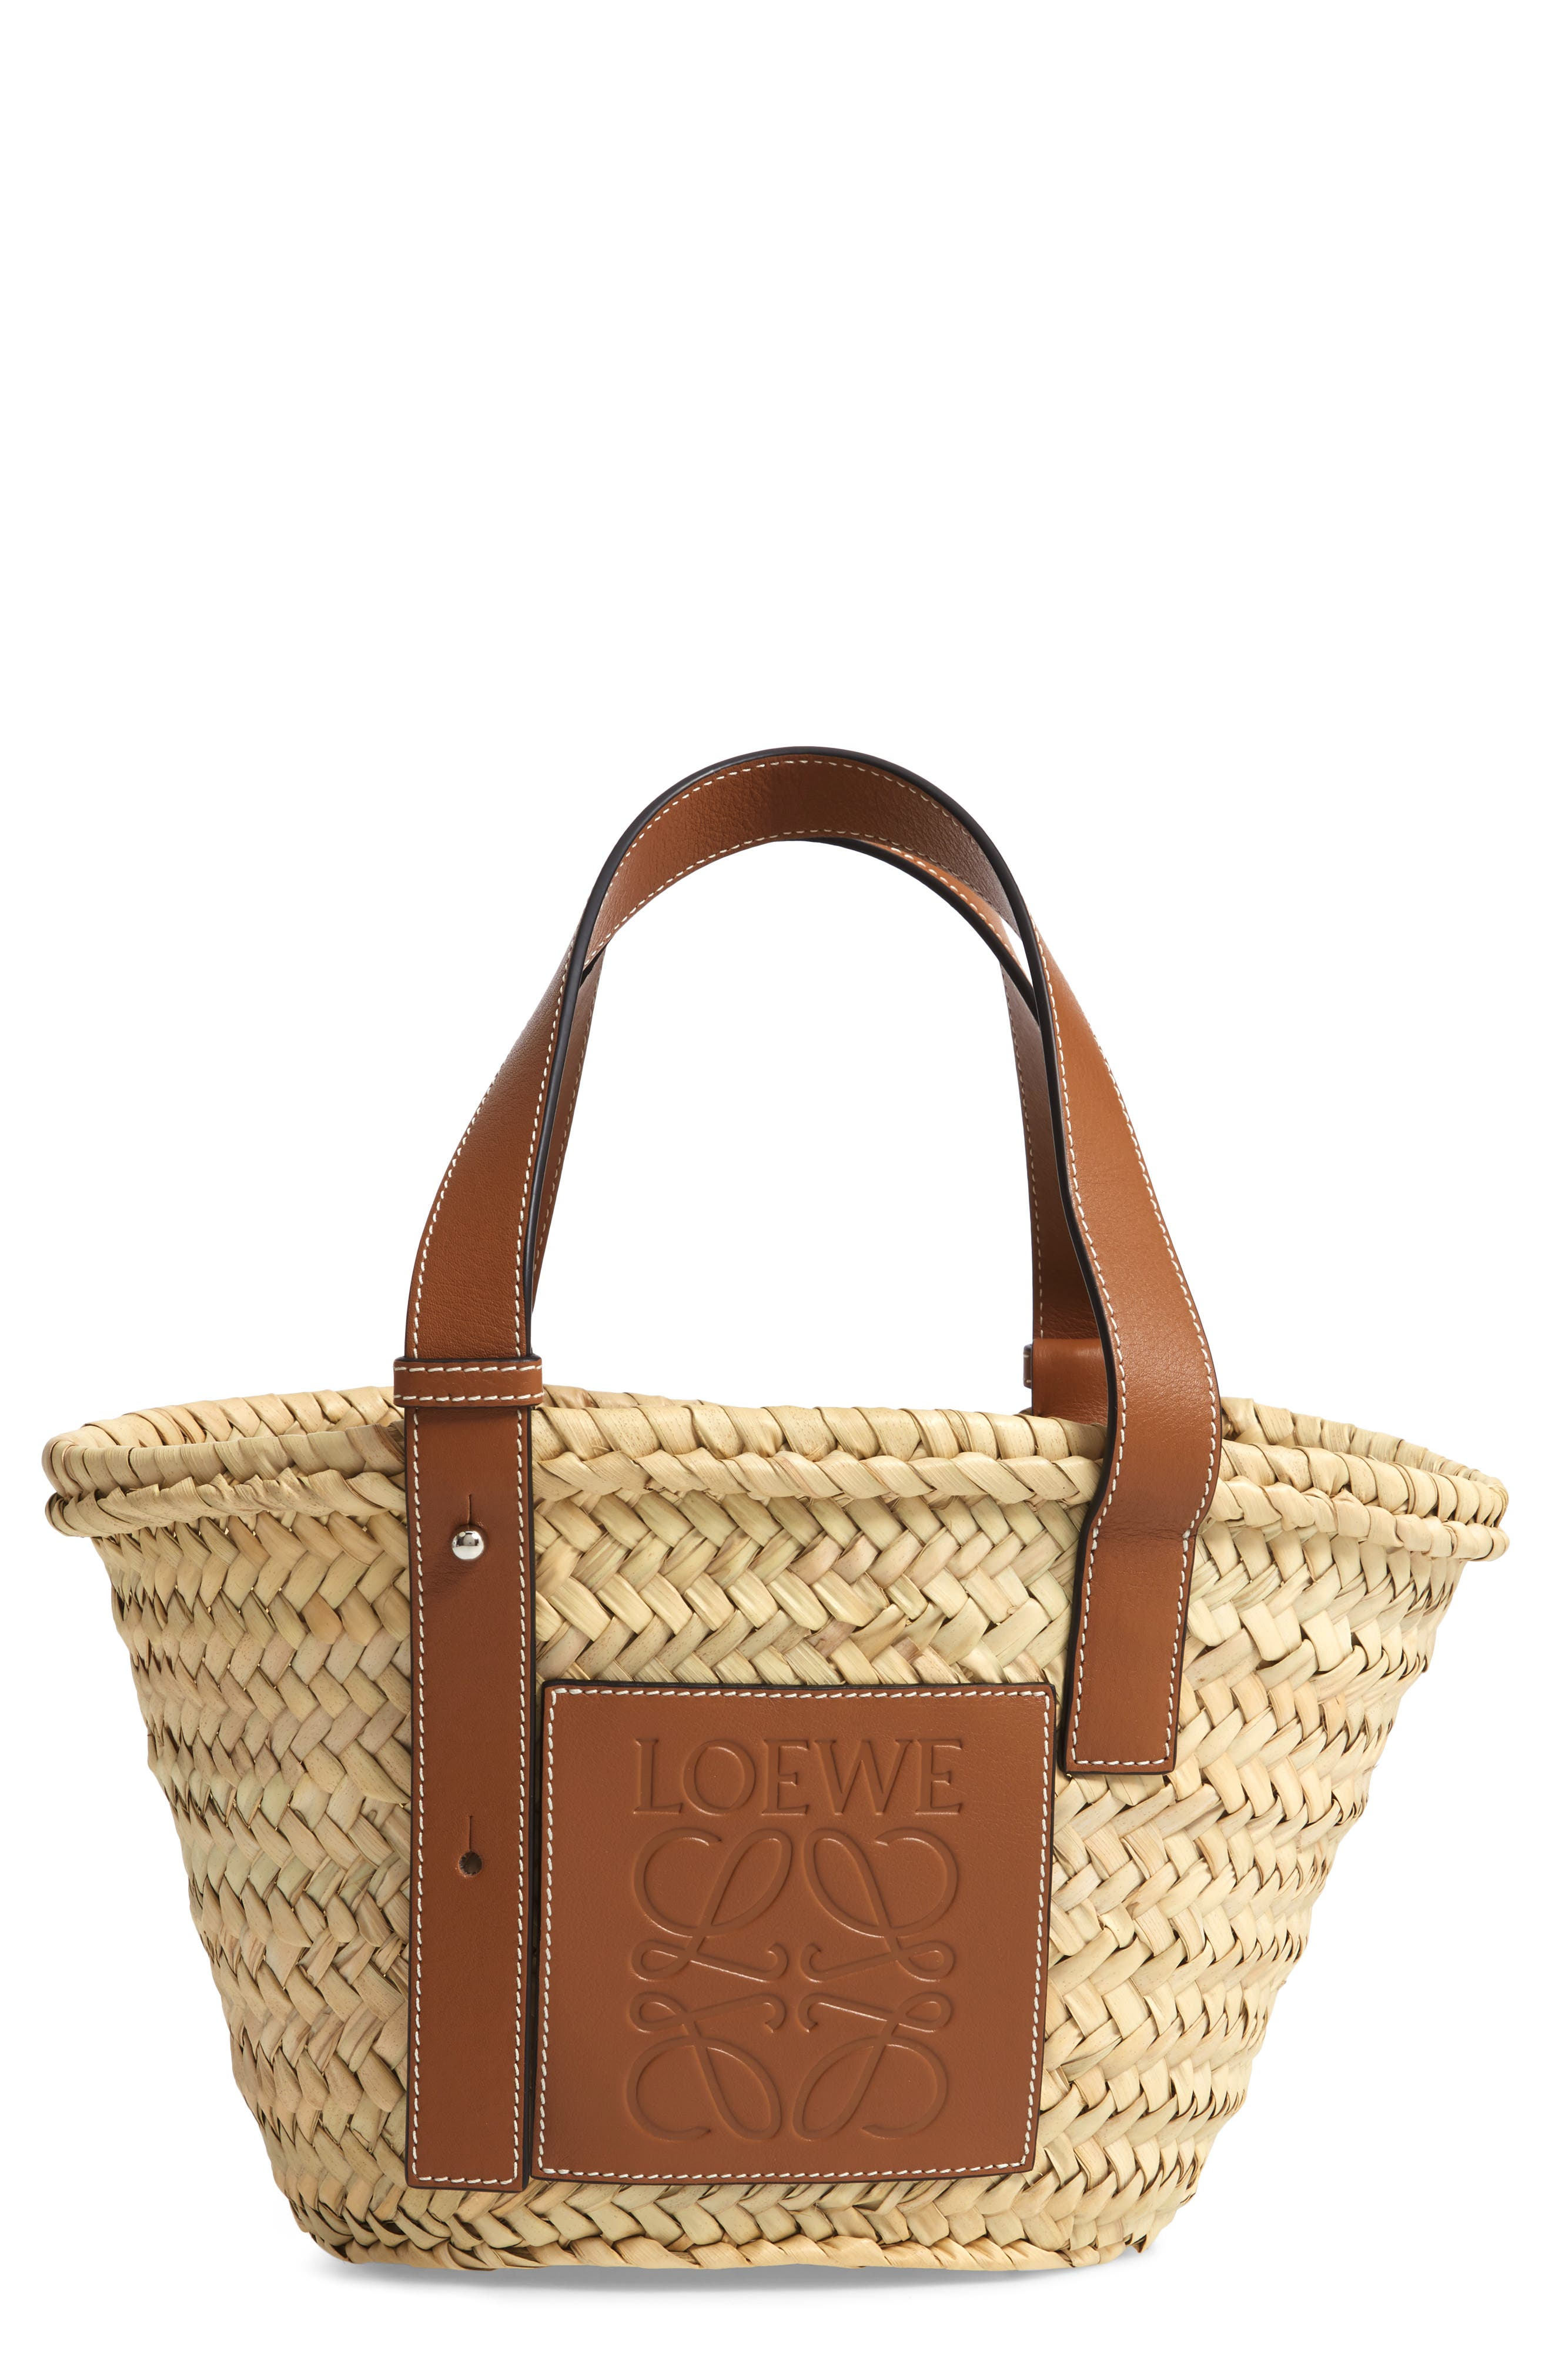 Small Logo Straw Tote,                             Main thumbnail 1, color,                             2435 NATURAL/ TAN